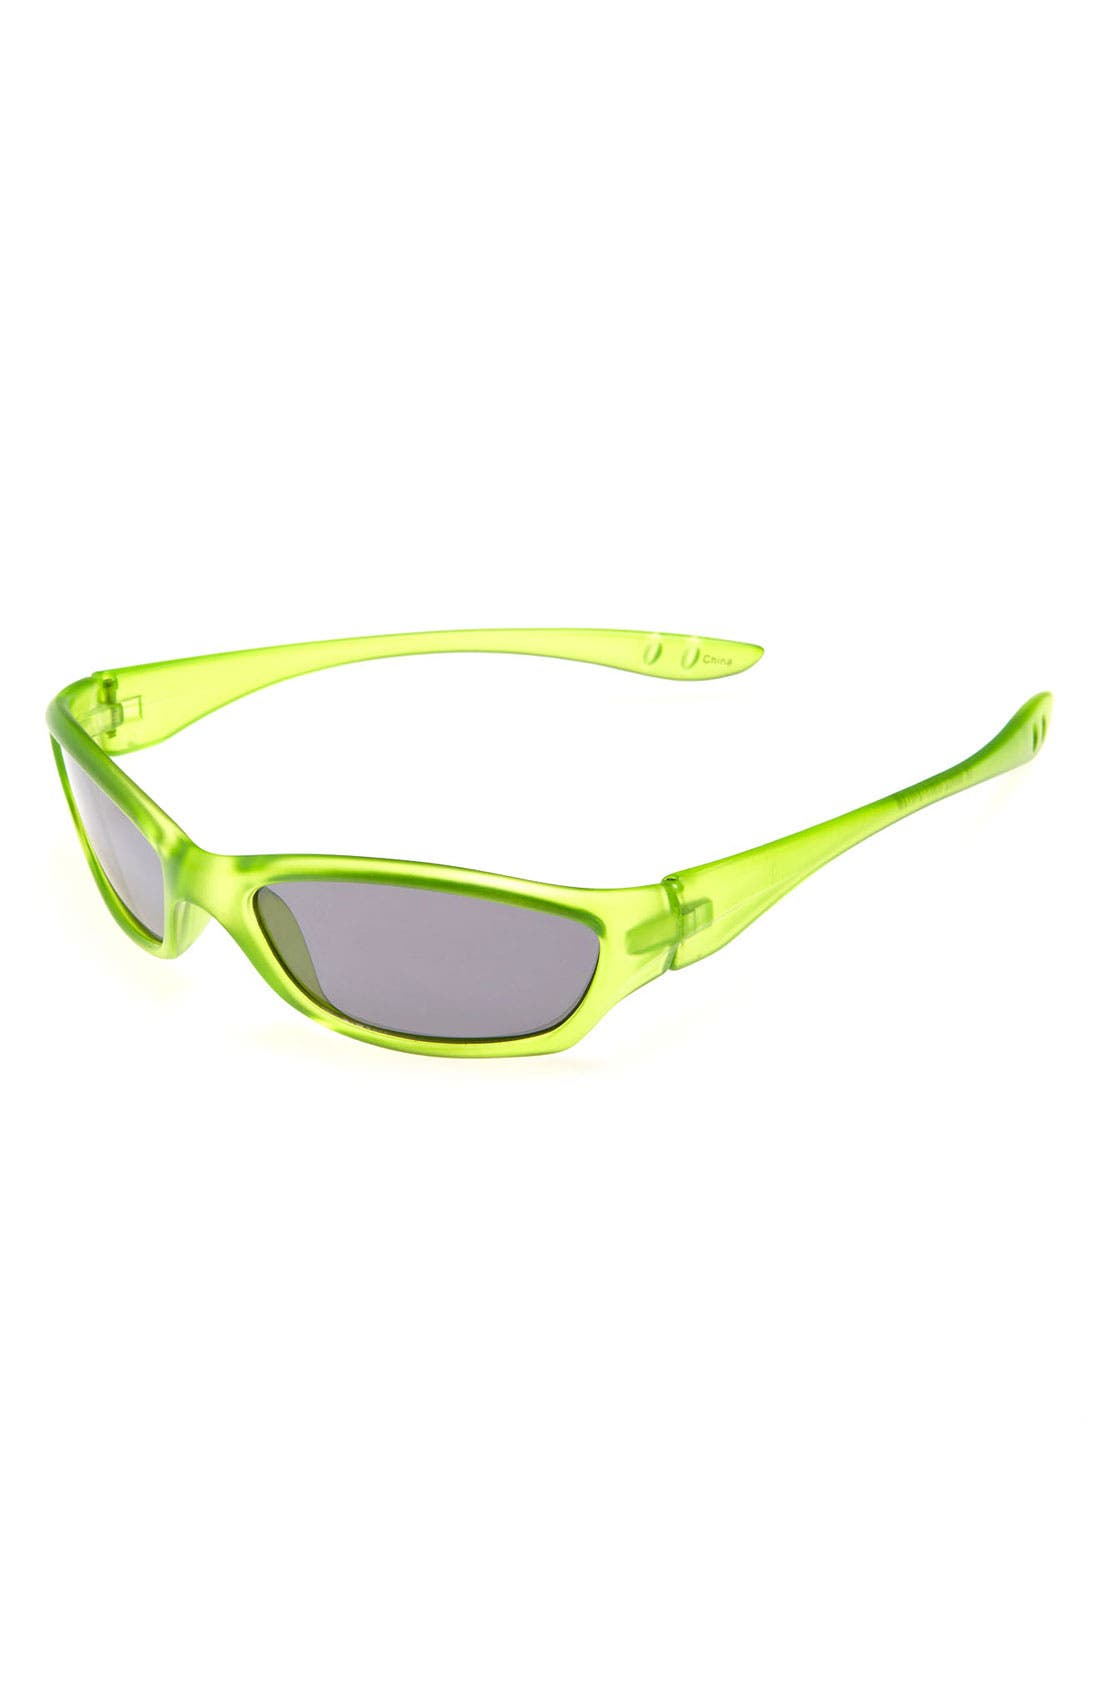 Alternate Image 1 Selected - Icon Eyewear Sport Wrap Sunglasses (Boys)